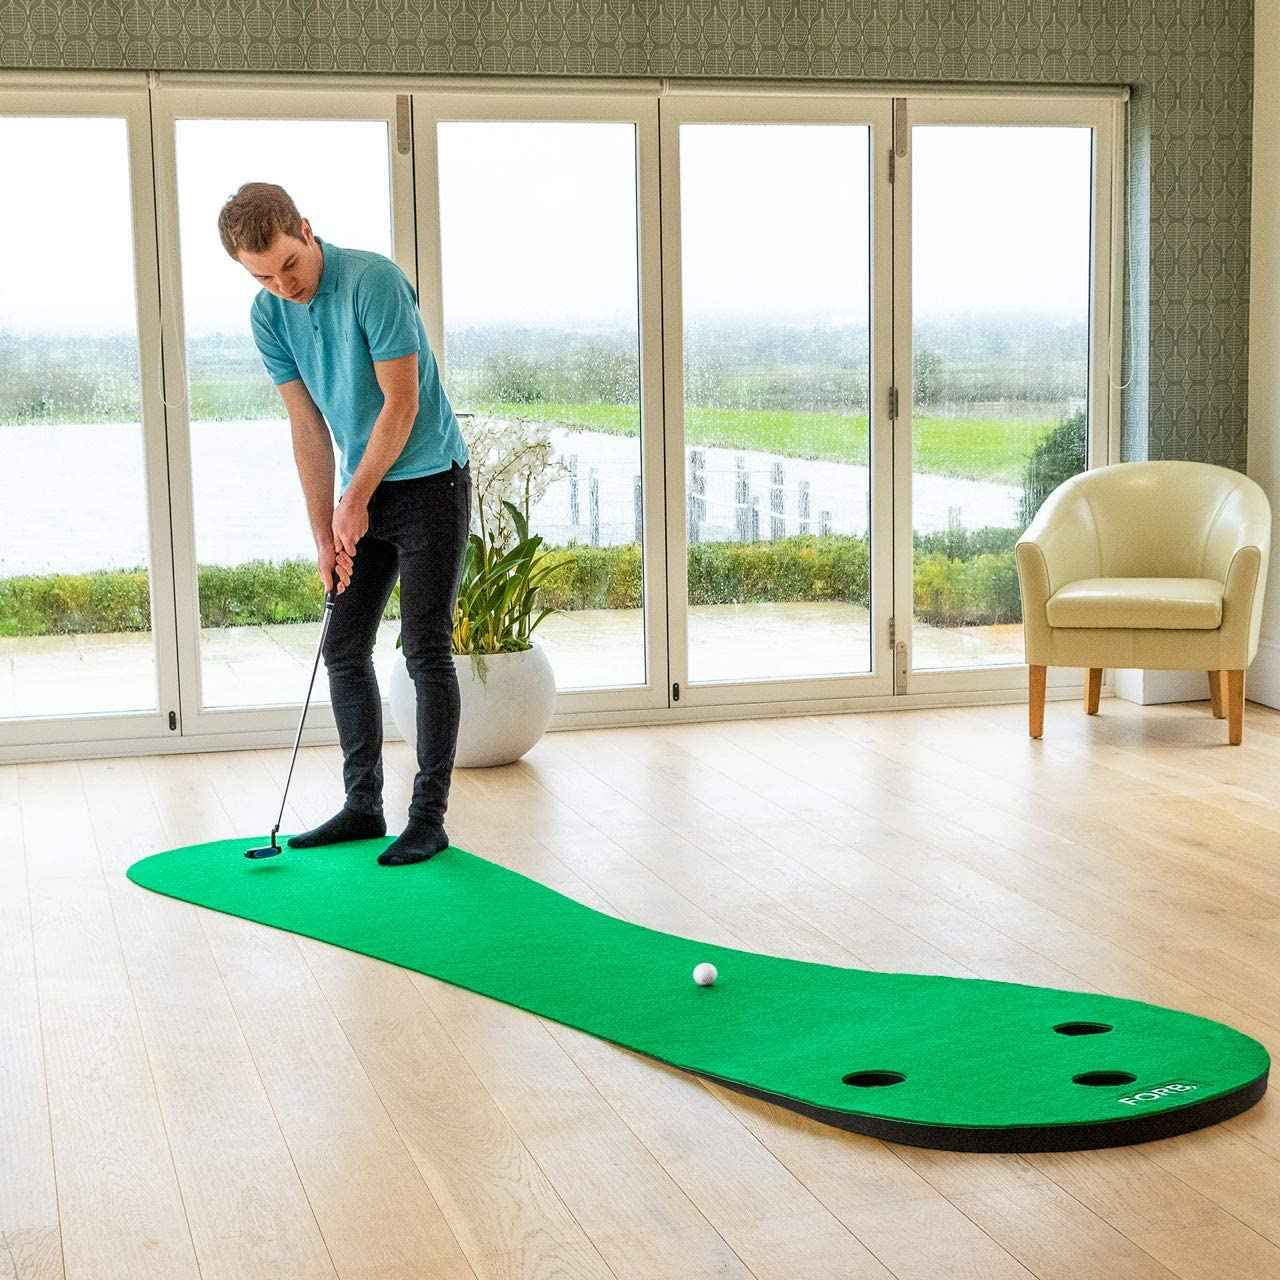 40th-birthday-gift-ideas-for-men-putting-mat